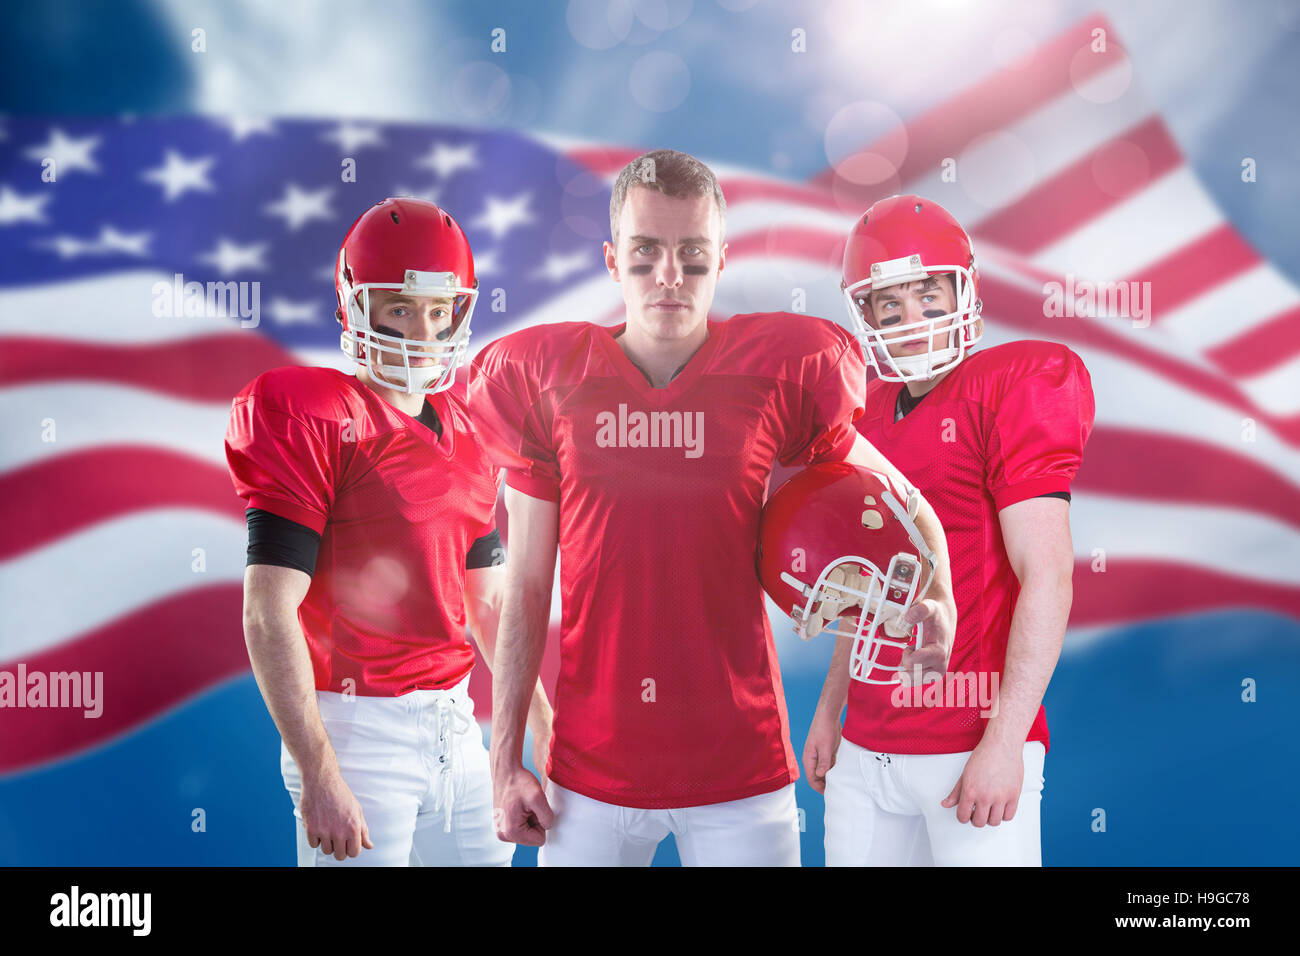 Composite image of american football team - Stock Image